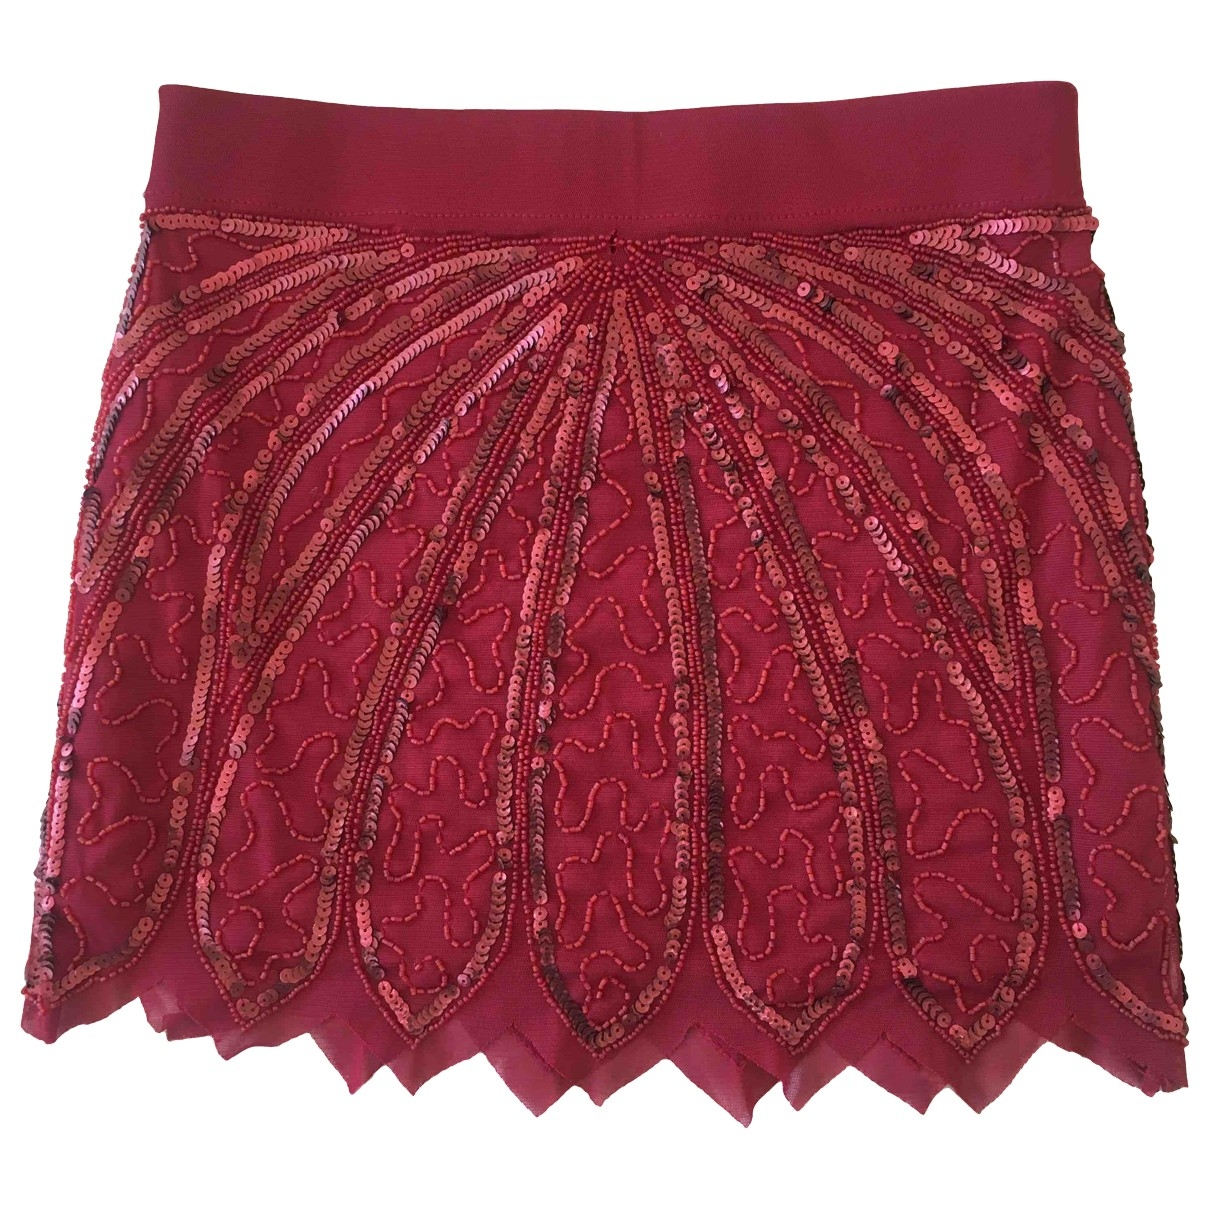 Non Signé / Unsigned \N Burgundy skirt for Women S International